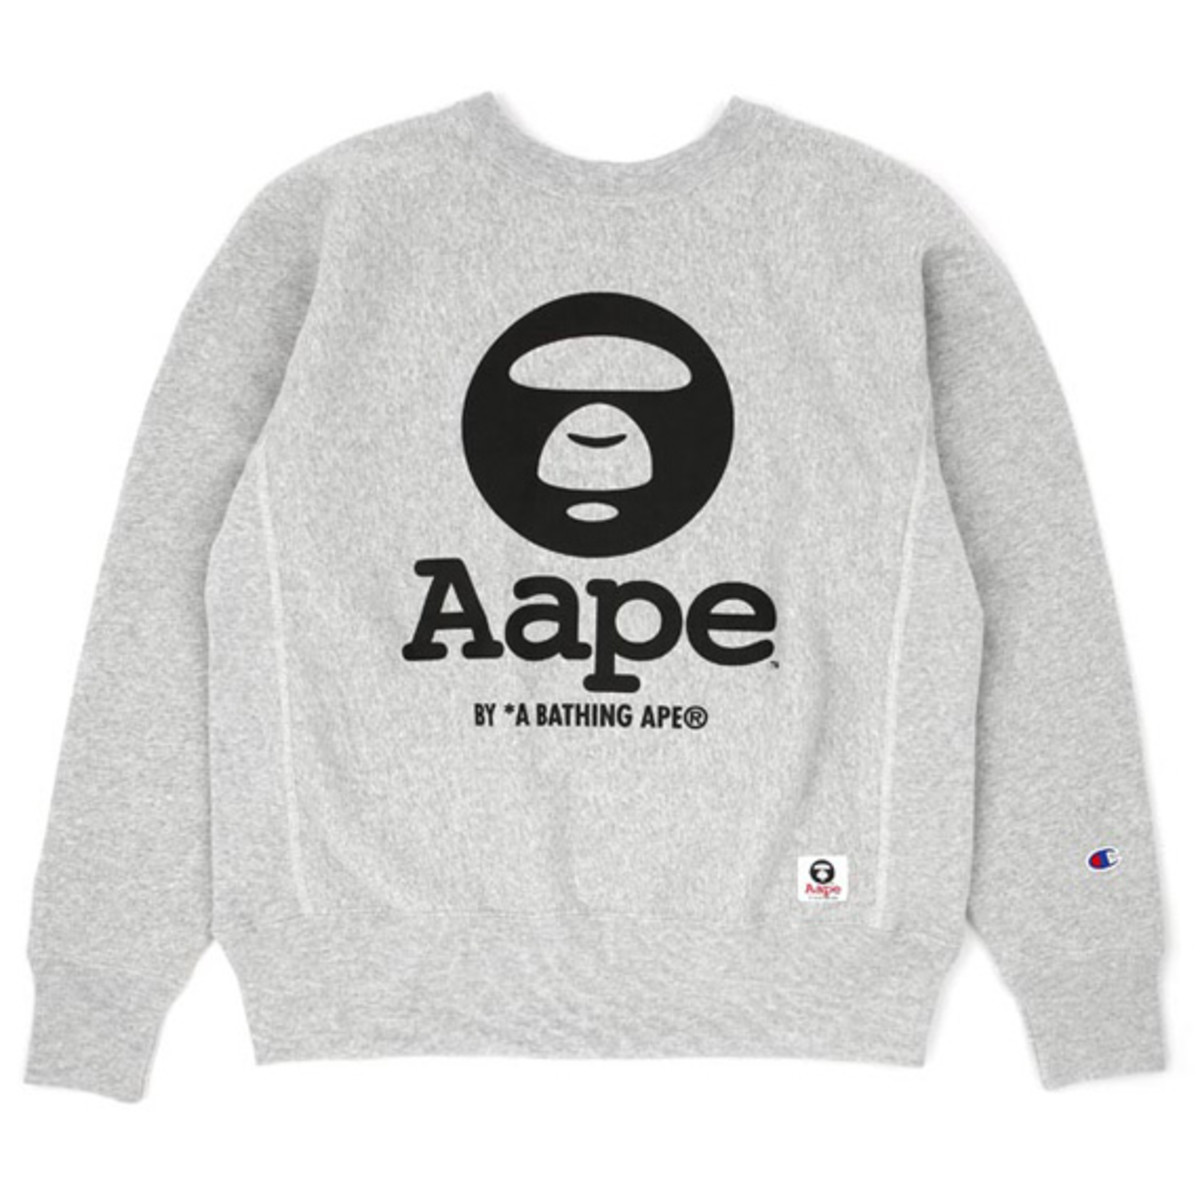 champion-aape-by-a-bathing-ape-02